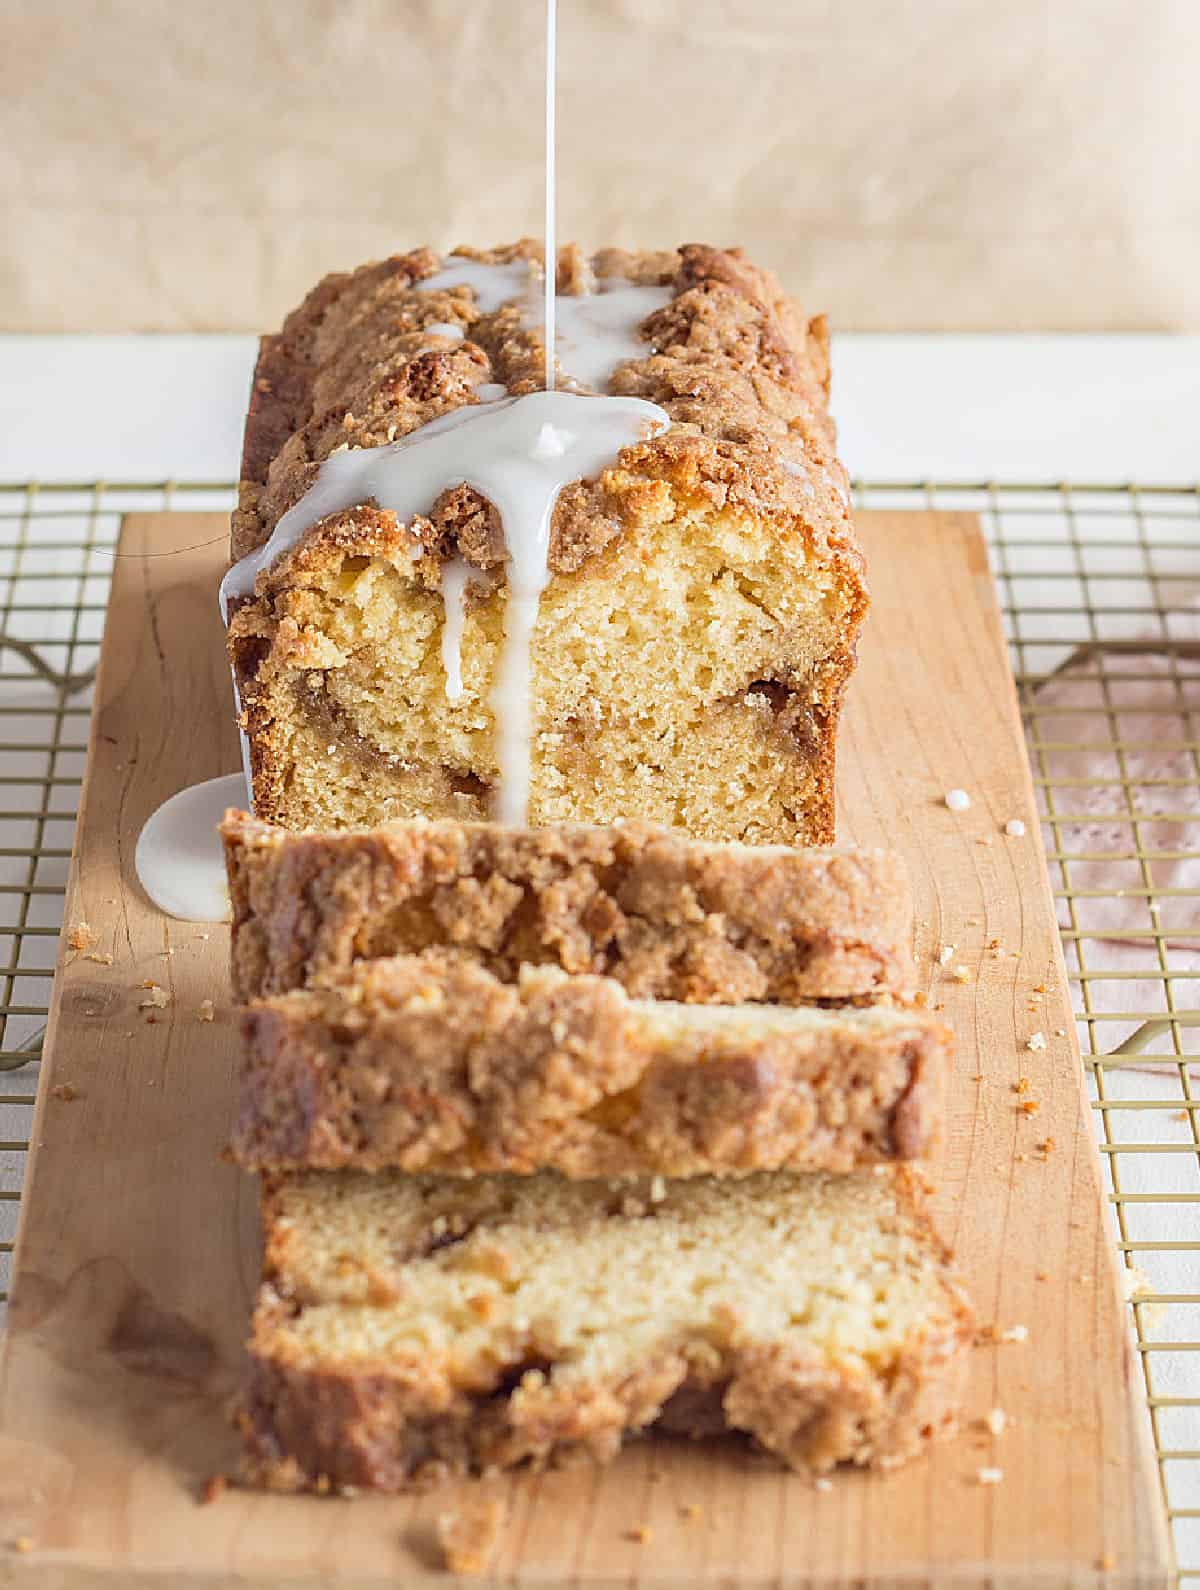 Glaze pouring over coffee cake loaf on a wooden board, metal rack